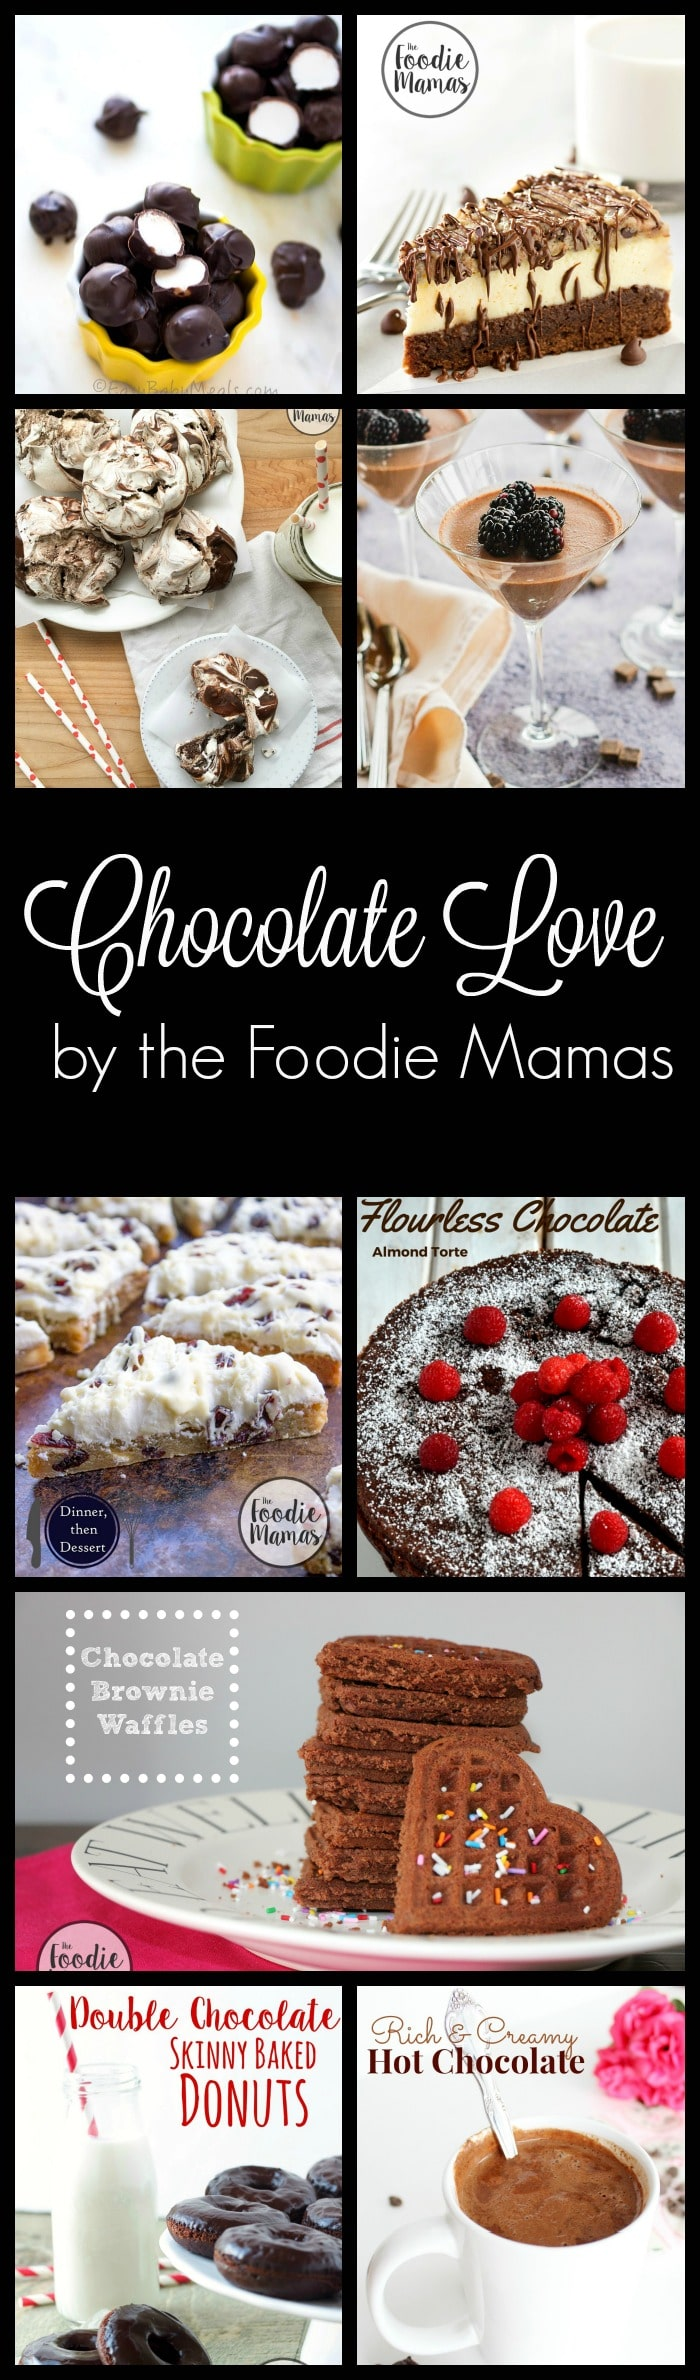 A fabulous collection of chocolate recipes!!